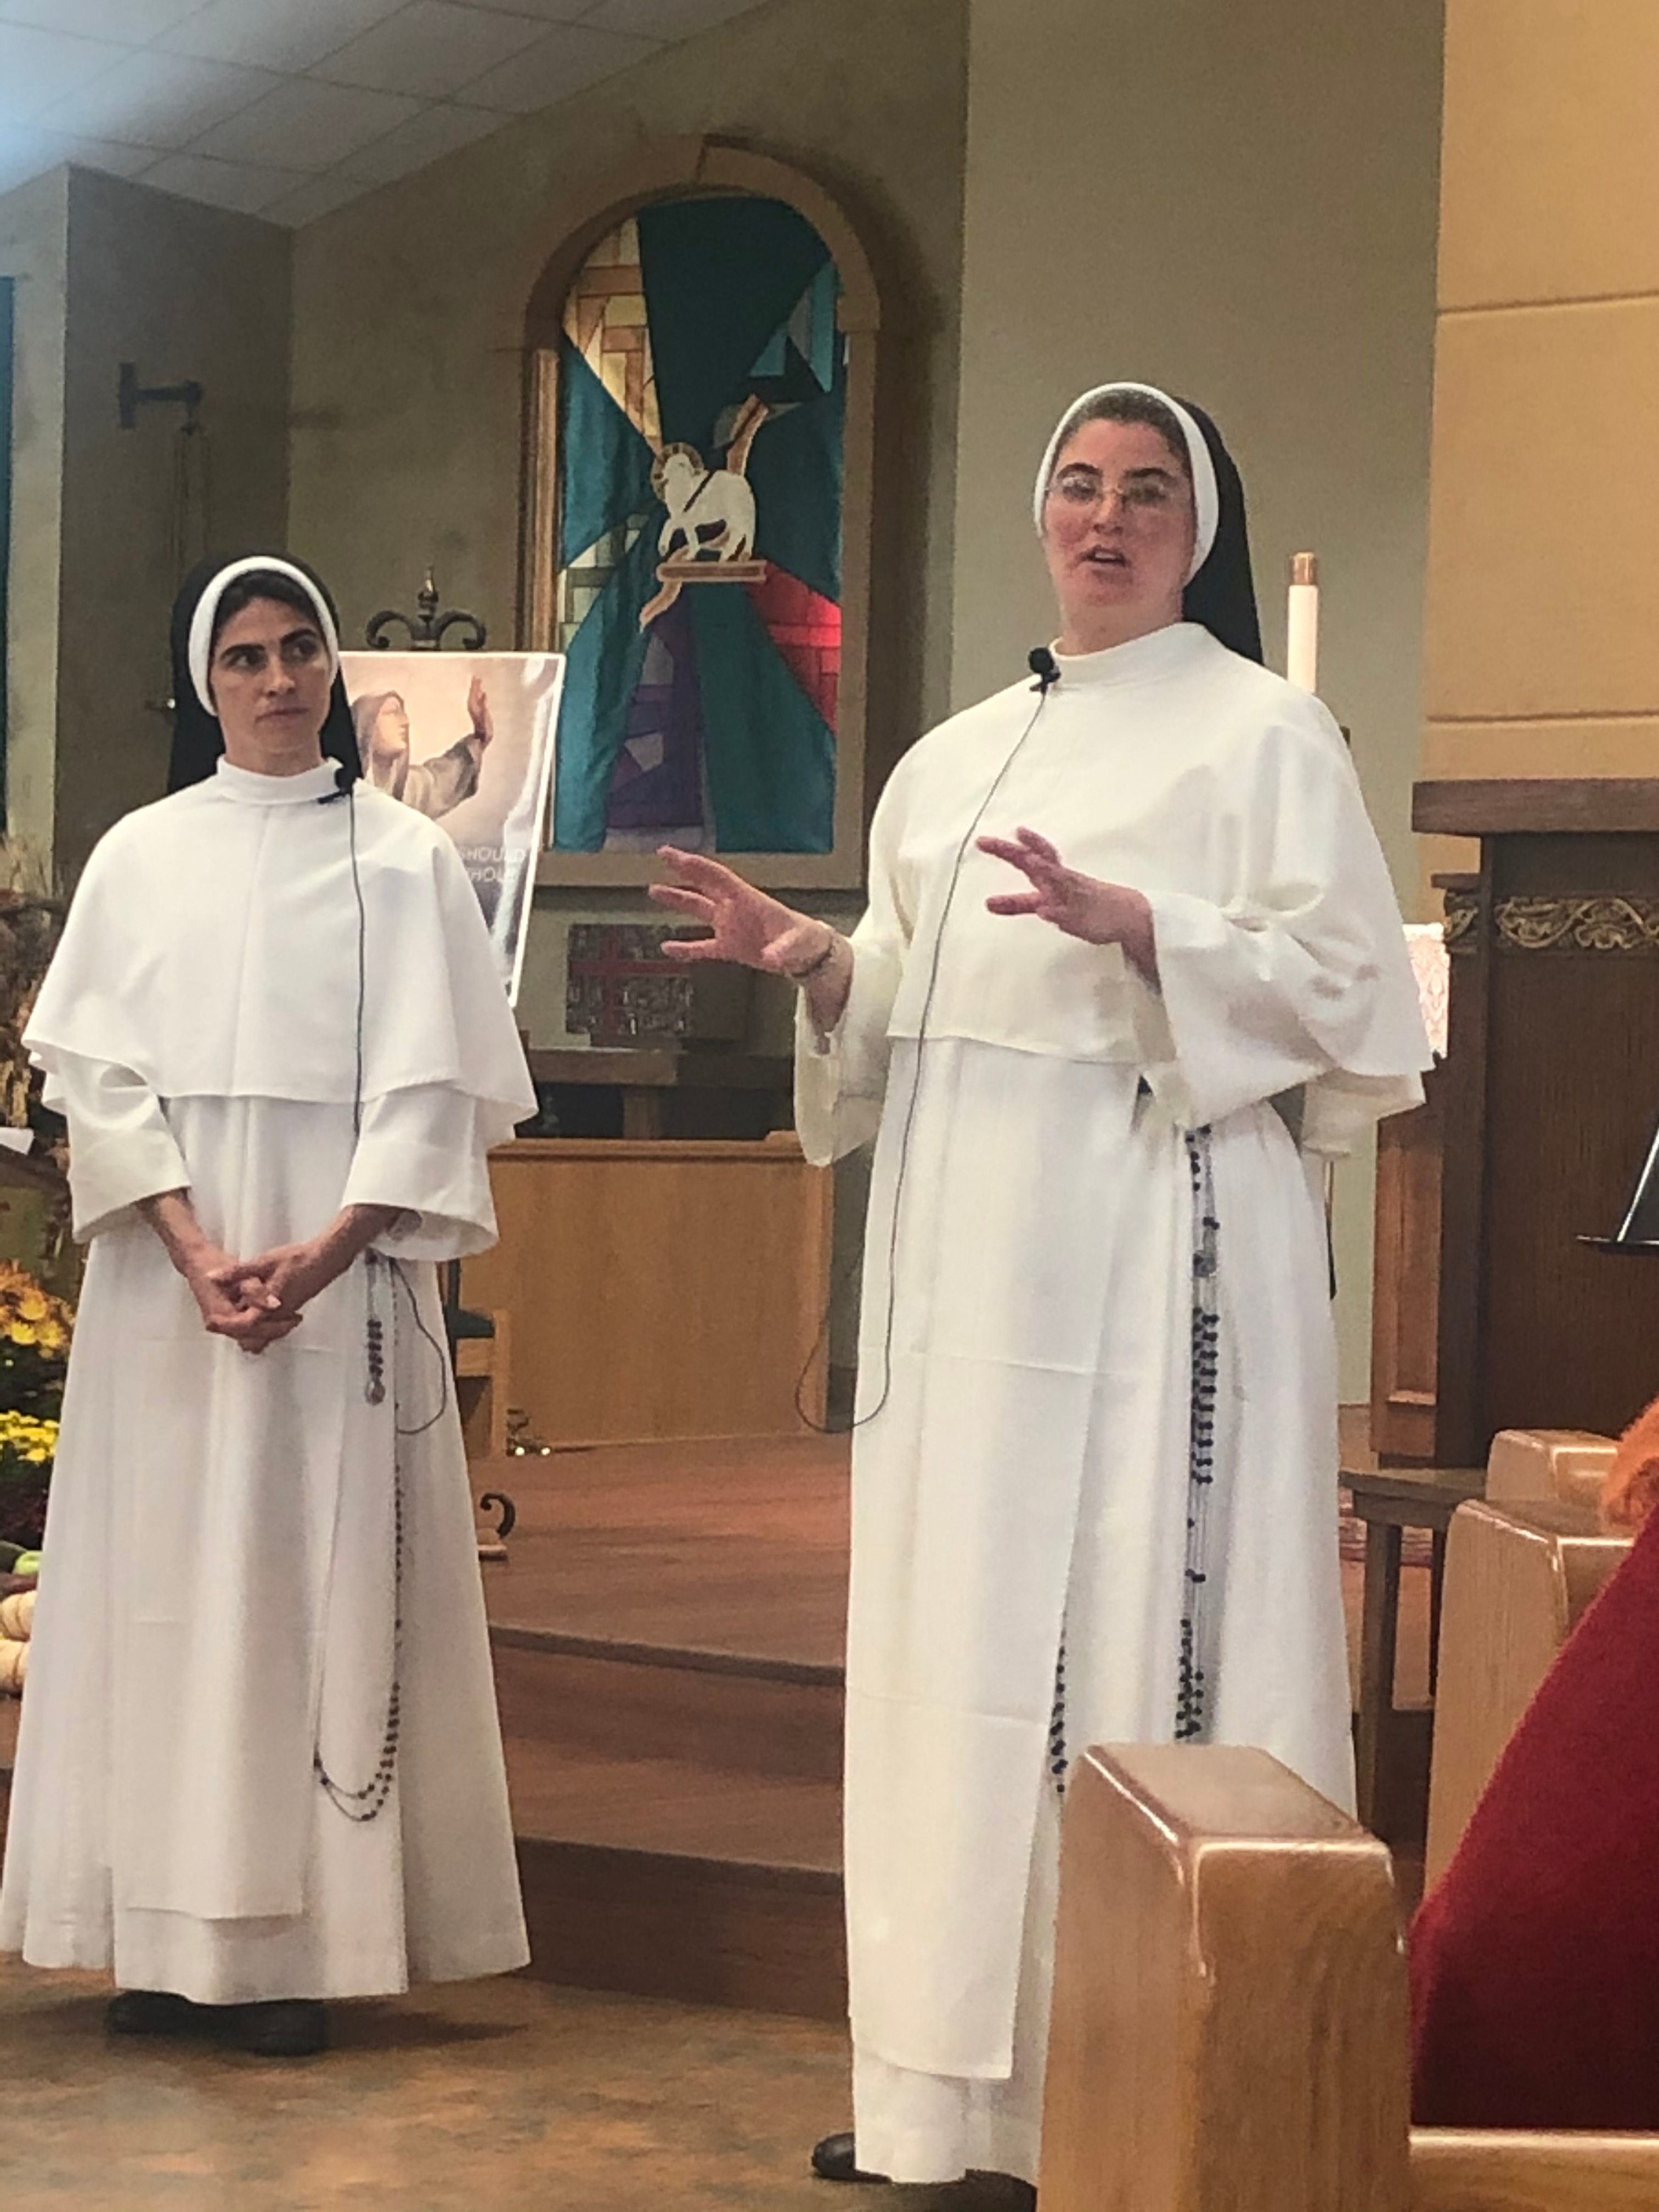 Sr. Marie Hannah and Sr Michaela